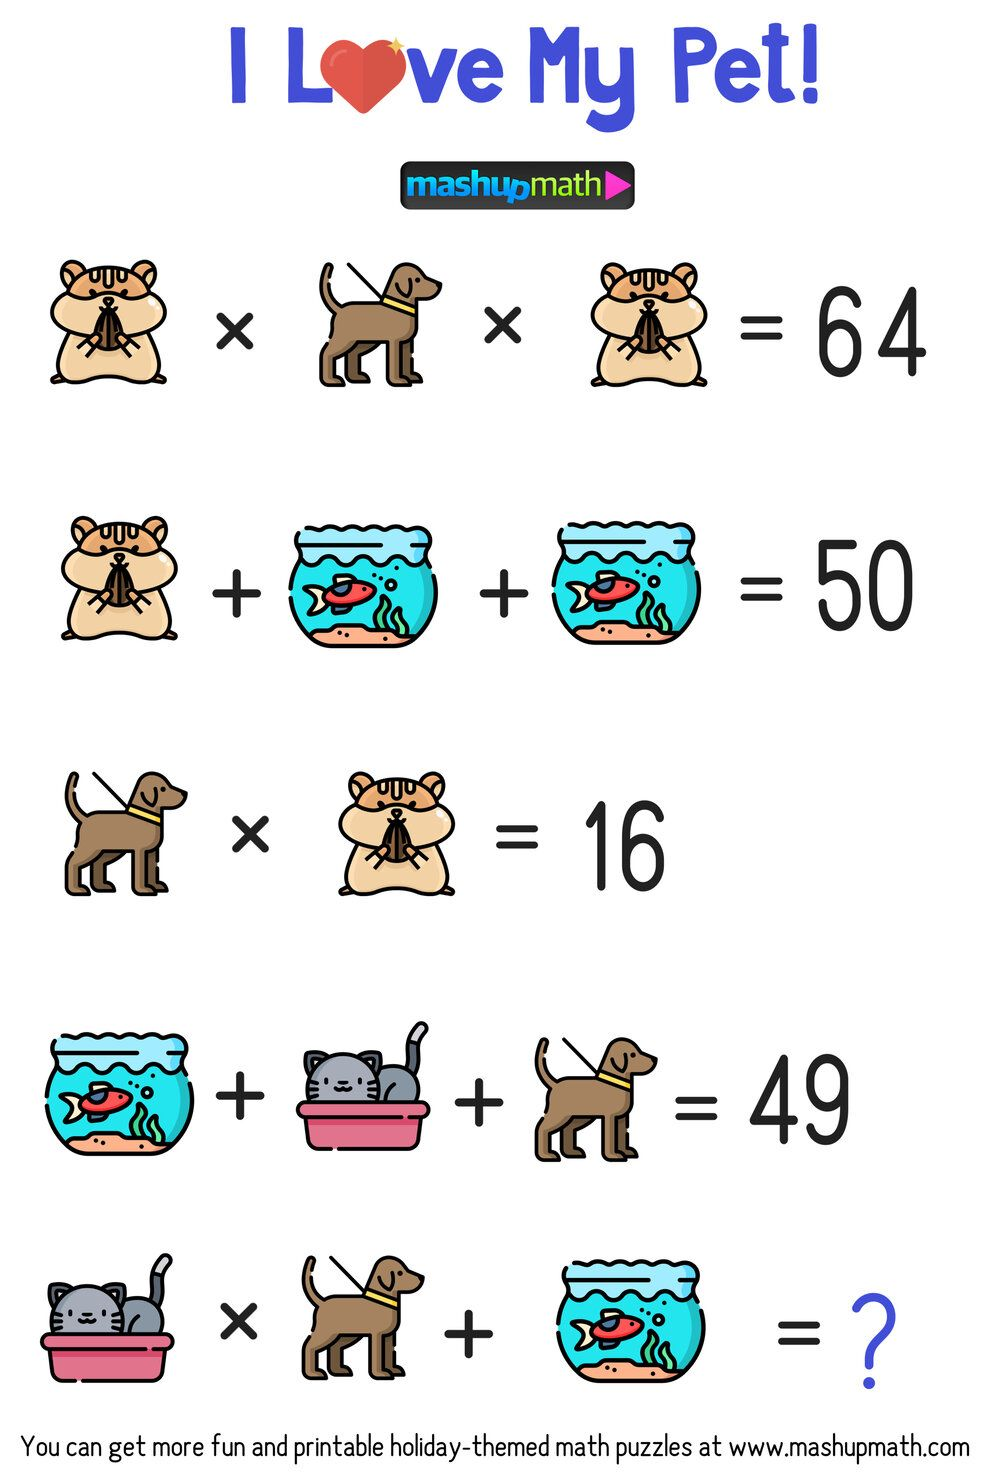 Celebrate National Pet Day In Your Classroom With These Free Math Puzzles Mashup Math In 2020 Maths Puzzles Math Logic Puzzles Free Math [ 1477 x 1000 Pixel ]